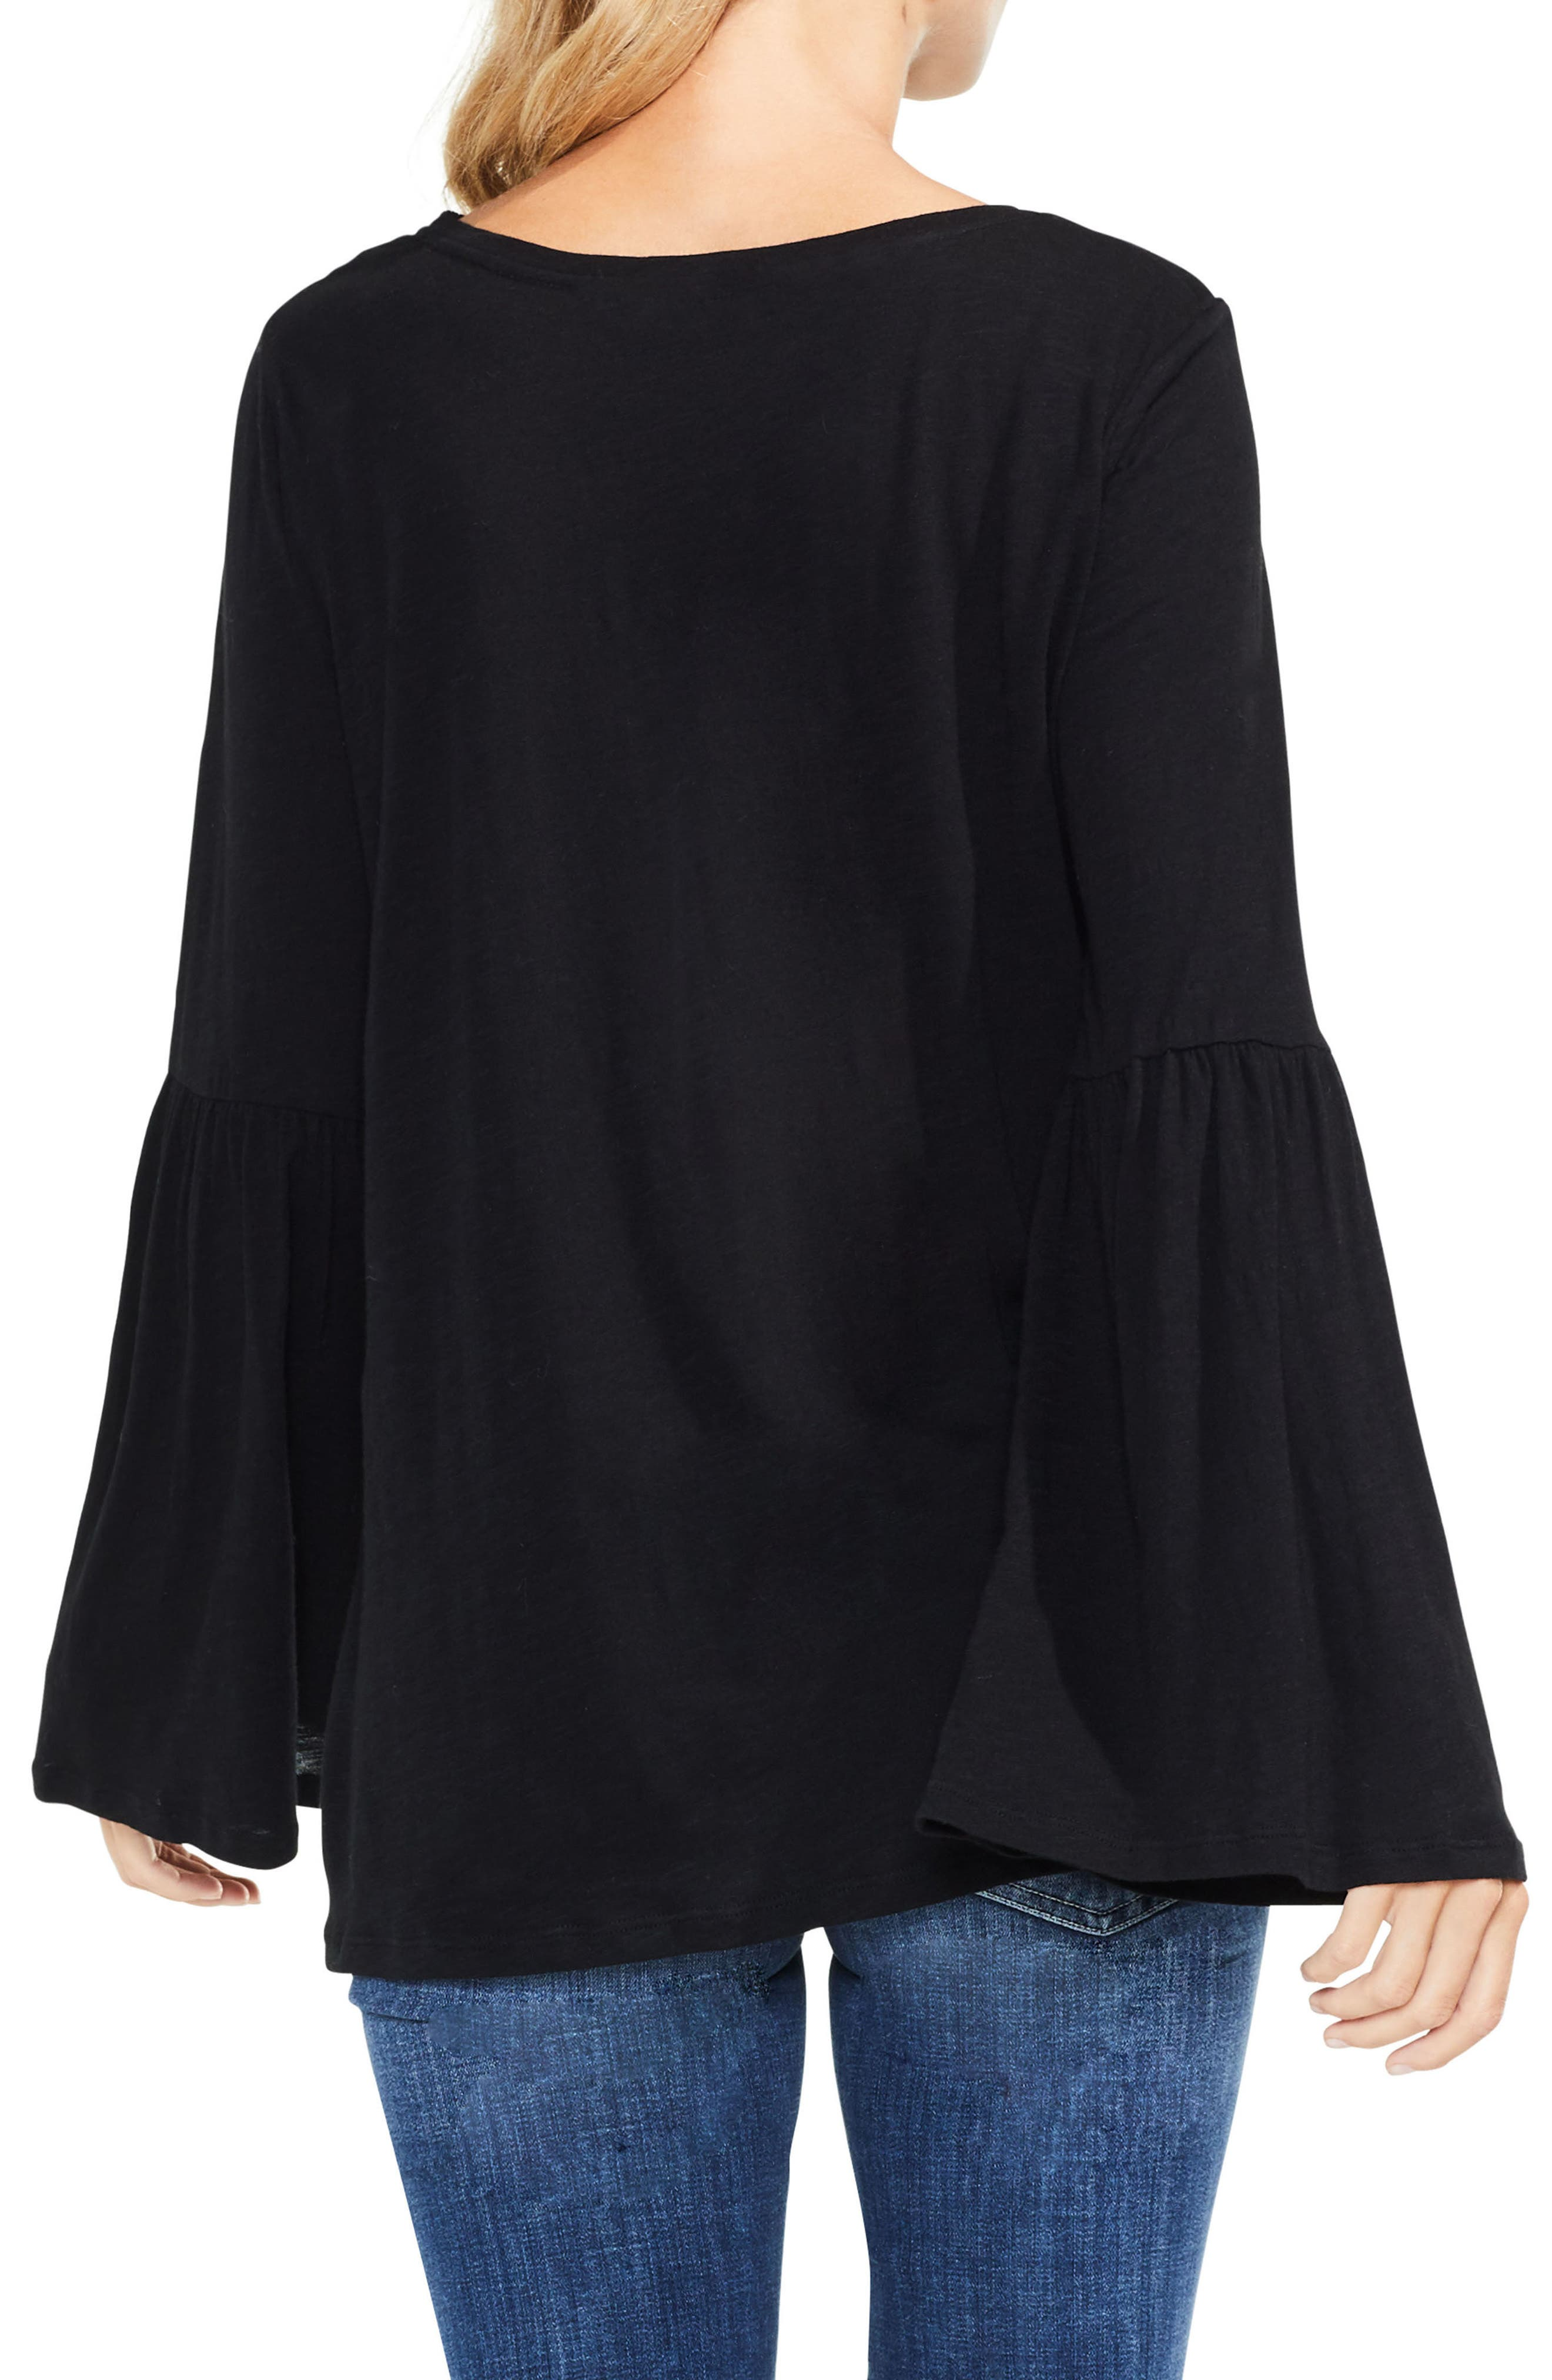 TWO BY VINCE CAMUTO,                             Bell Sleeve Cotton & Modal Top,                             Alternate thumbnail 2, color,                             006